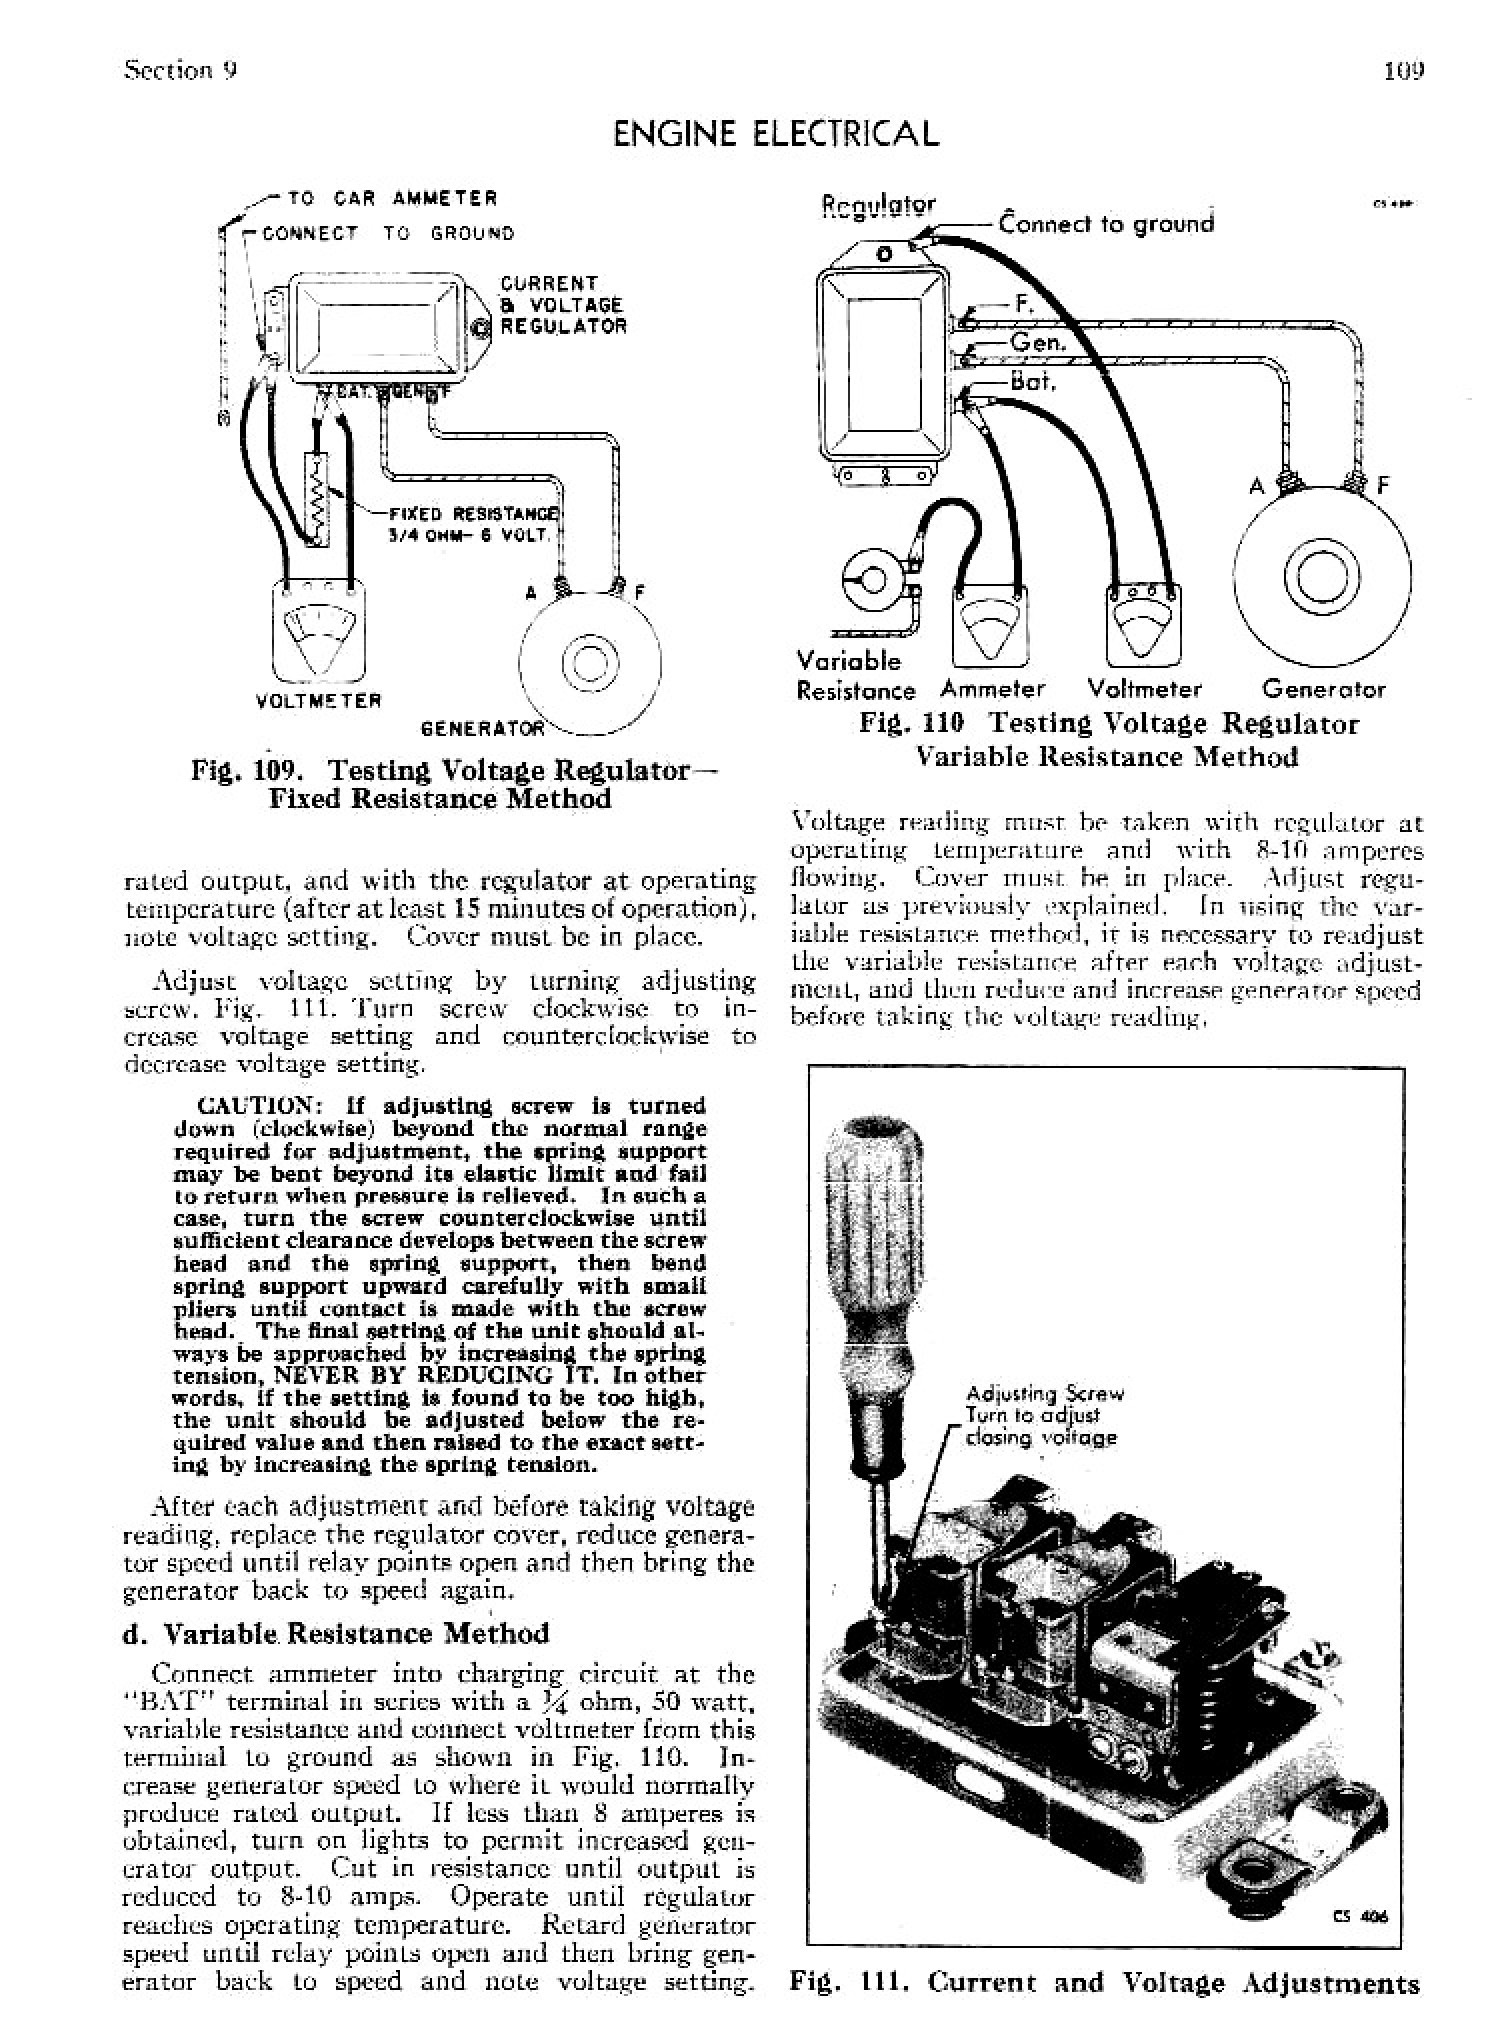 1949 Cadillac Shop Manual- Engine Electrical Page 14 of 17